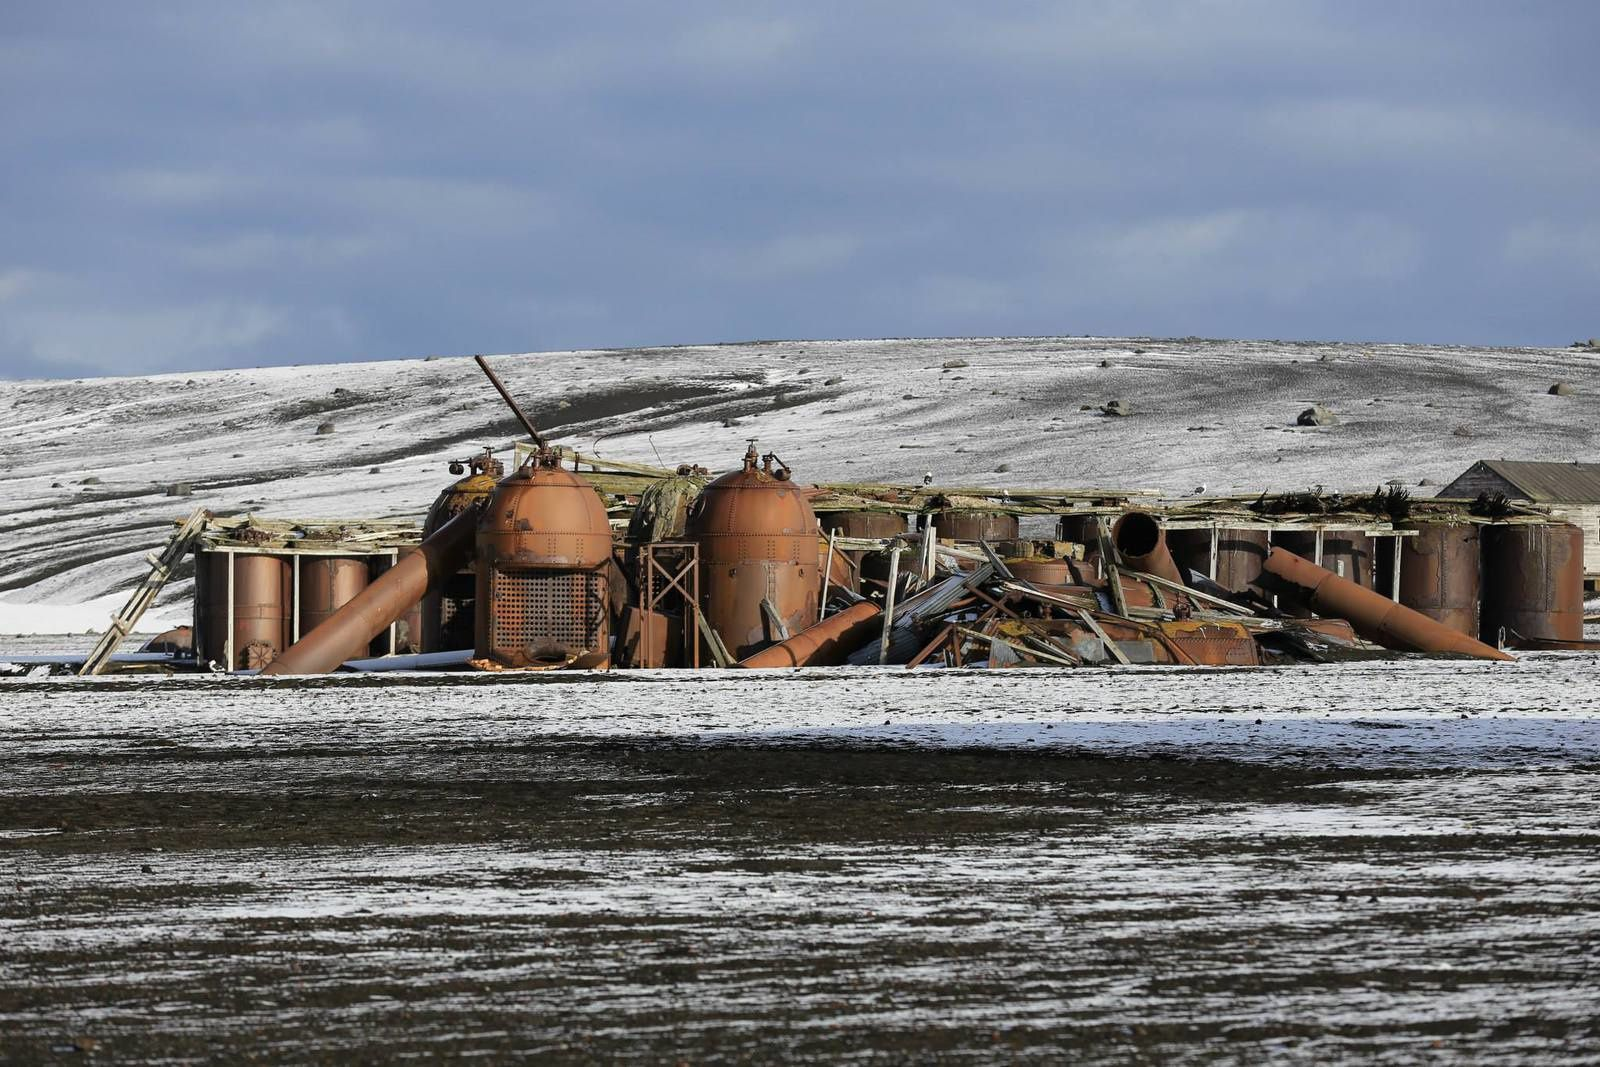 Deception island - ruins of whaling facilities - photo Antony Van Eeten 03.2014